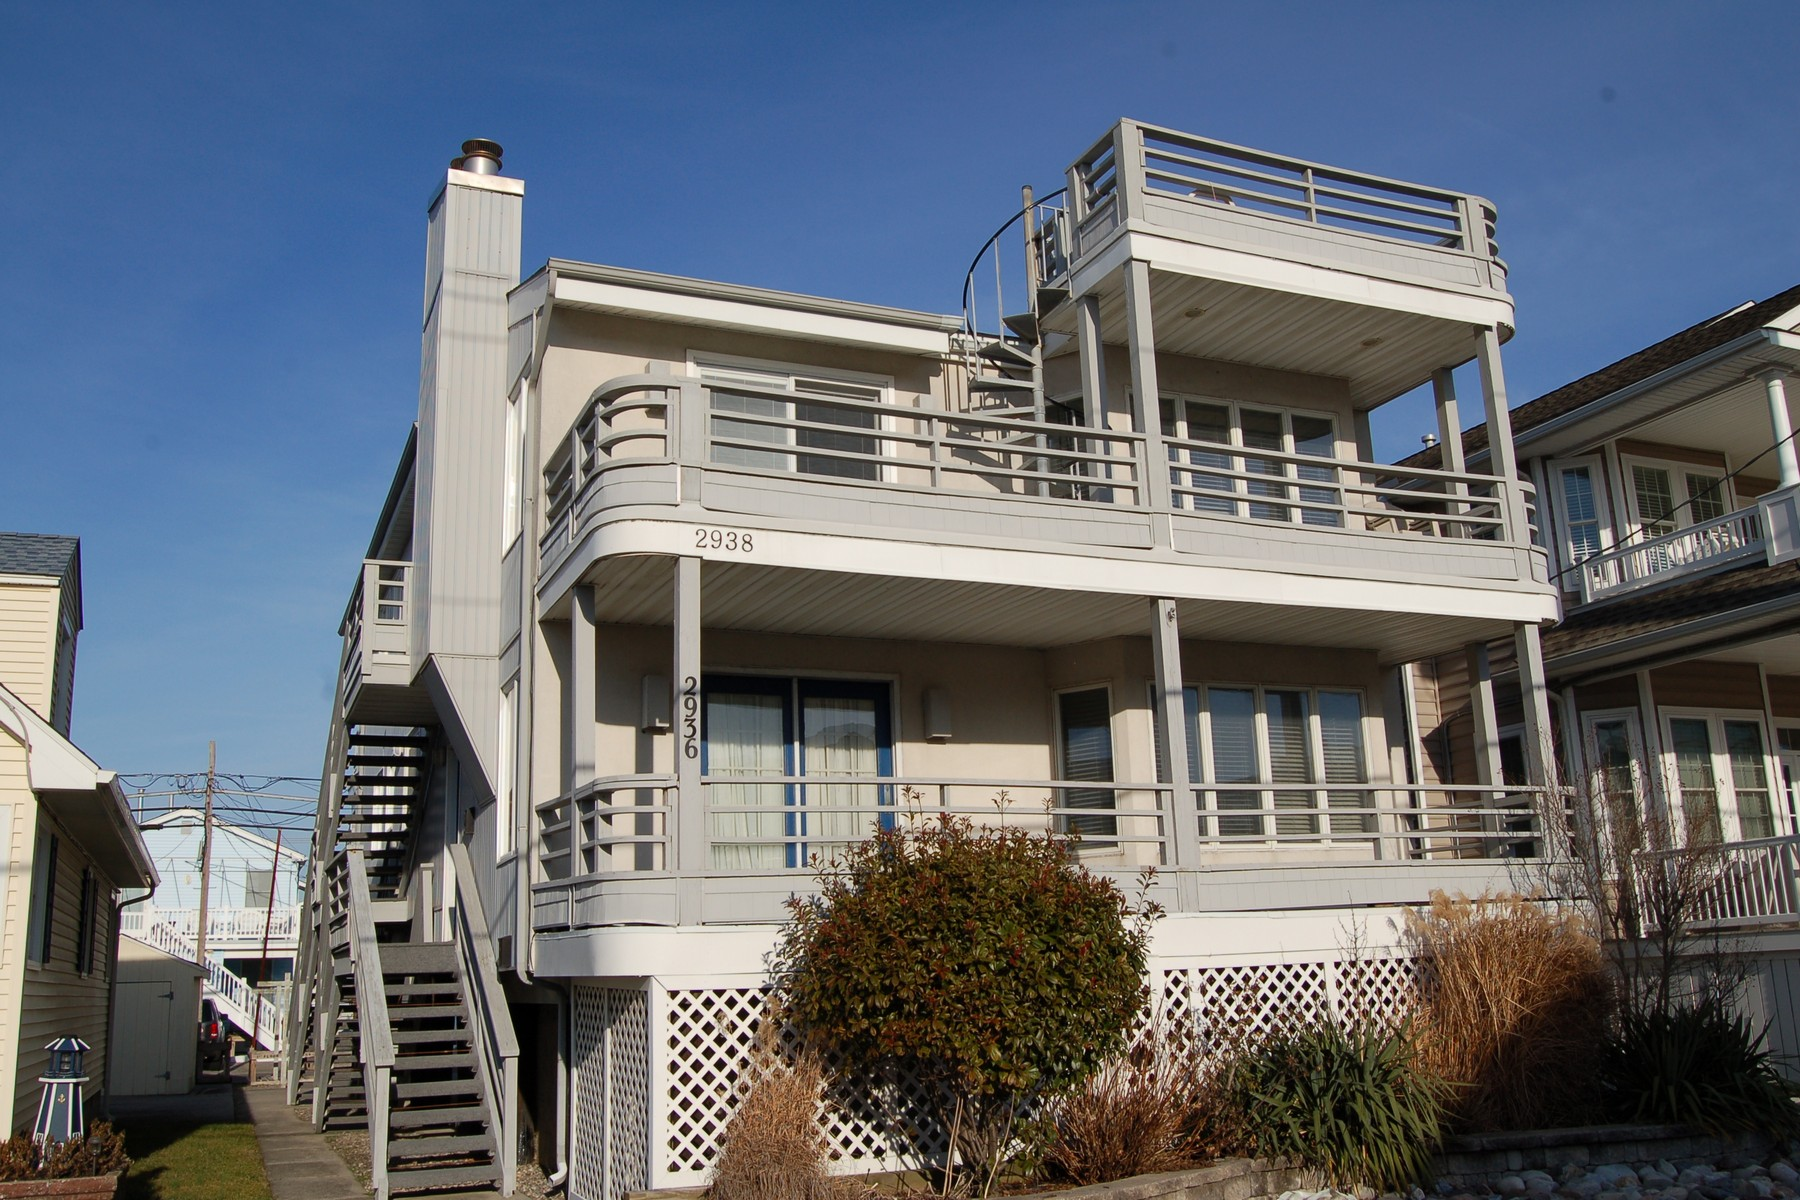 Condominium for Sale at Well Maintained Home 2938 Central Avenue 2nd Floor Ocean City, New Jersey 08226 United States